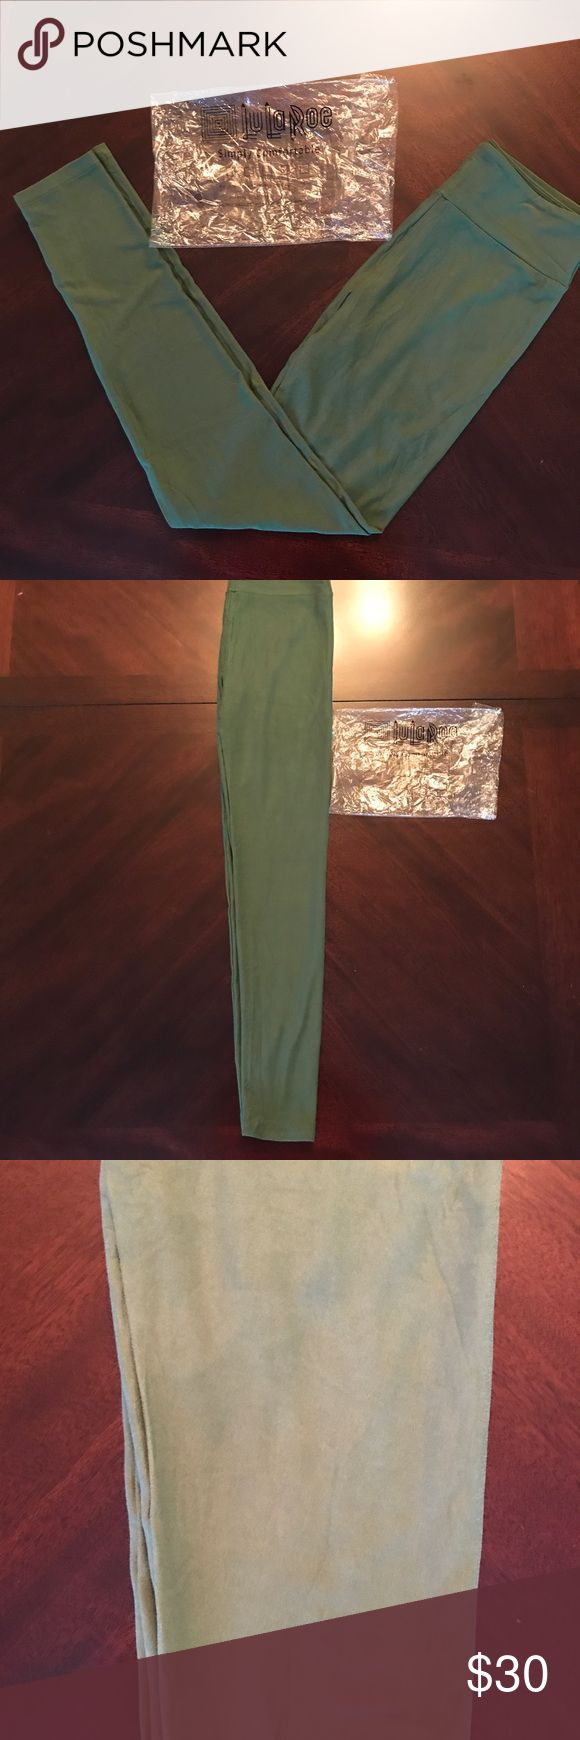 Lularoe solid green leggings OS Brand new, bought straight from consultant with original package. These solid green leggings I would classify as being an army/olive green. Based on the Lularoe color chart pictured I would say they are a mix of the three colors circled. Would go with tons of tops! Size OS fits 2-10. Shipped as pictured.  Fast shipper!  Please ask if you have any questions. LuLaRoe Pants Leggings